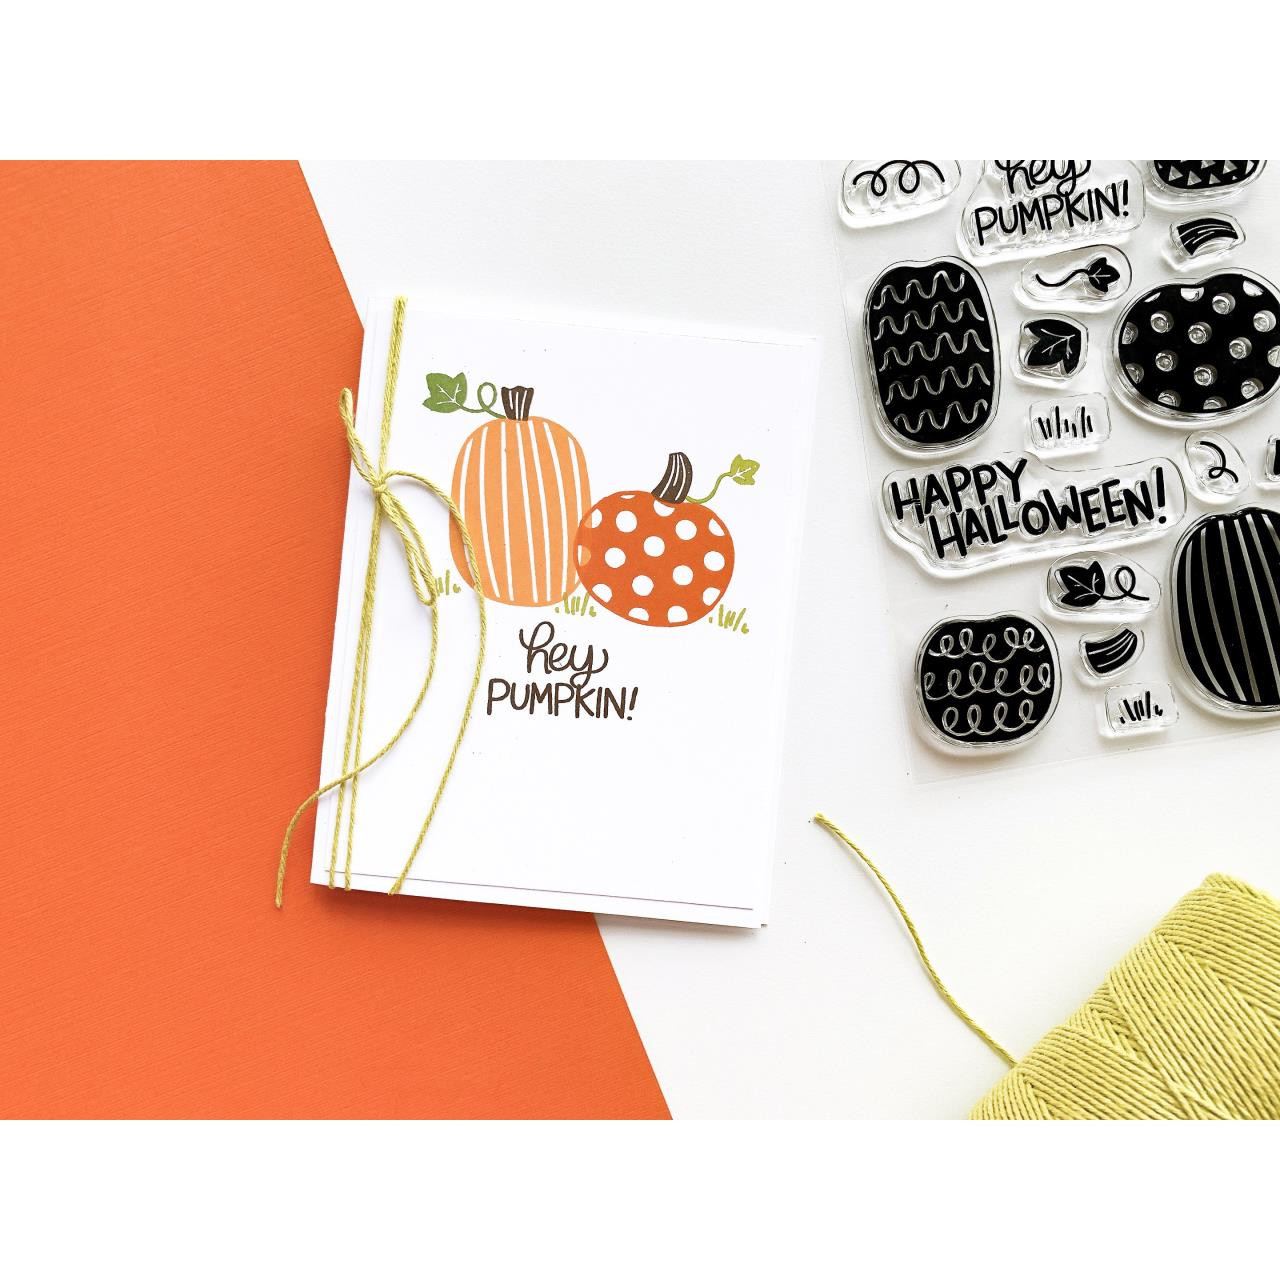 Hey Pumpkin, Catherine Pooler Clear Stamps - 819447028092